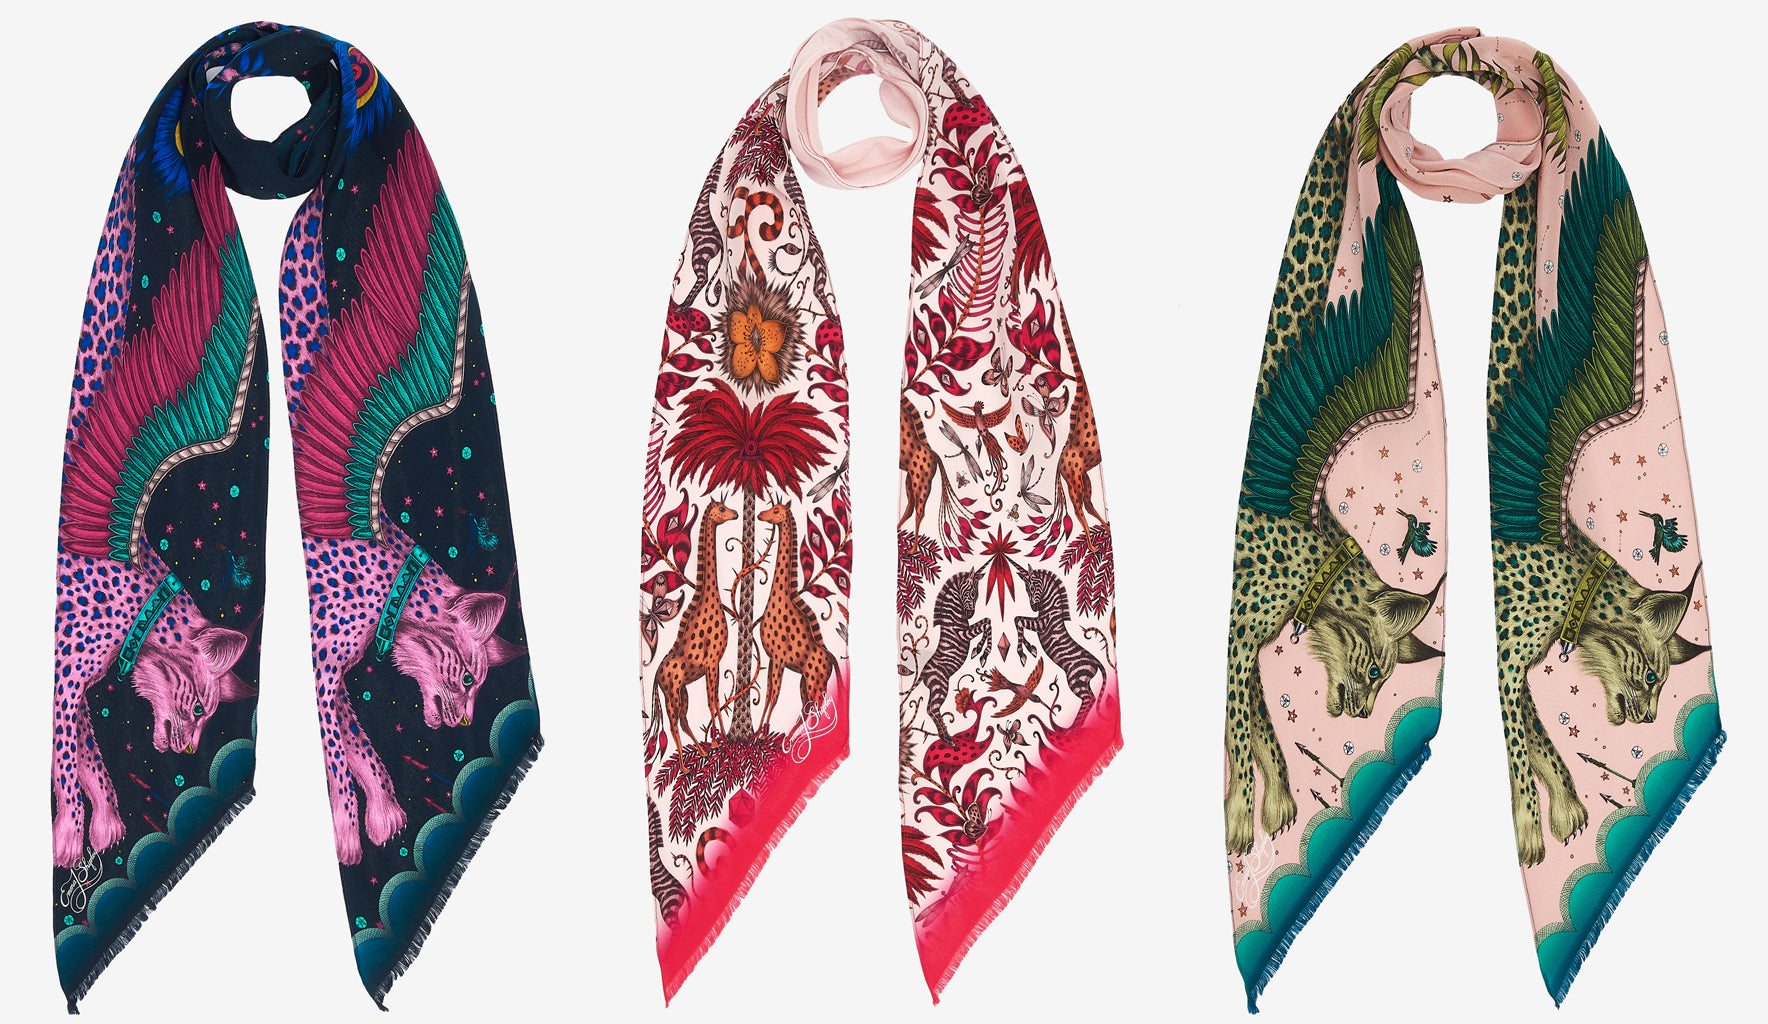 Emma J Shipley's new season silk skinny scarves feature an array of part real, part imaginary creatures within a surreal, hand drawn realm. Here you can see the Lynx Silk Skinny Scarf in navy and pink, and the Kruger silk skinny scarf.